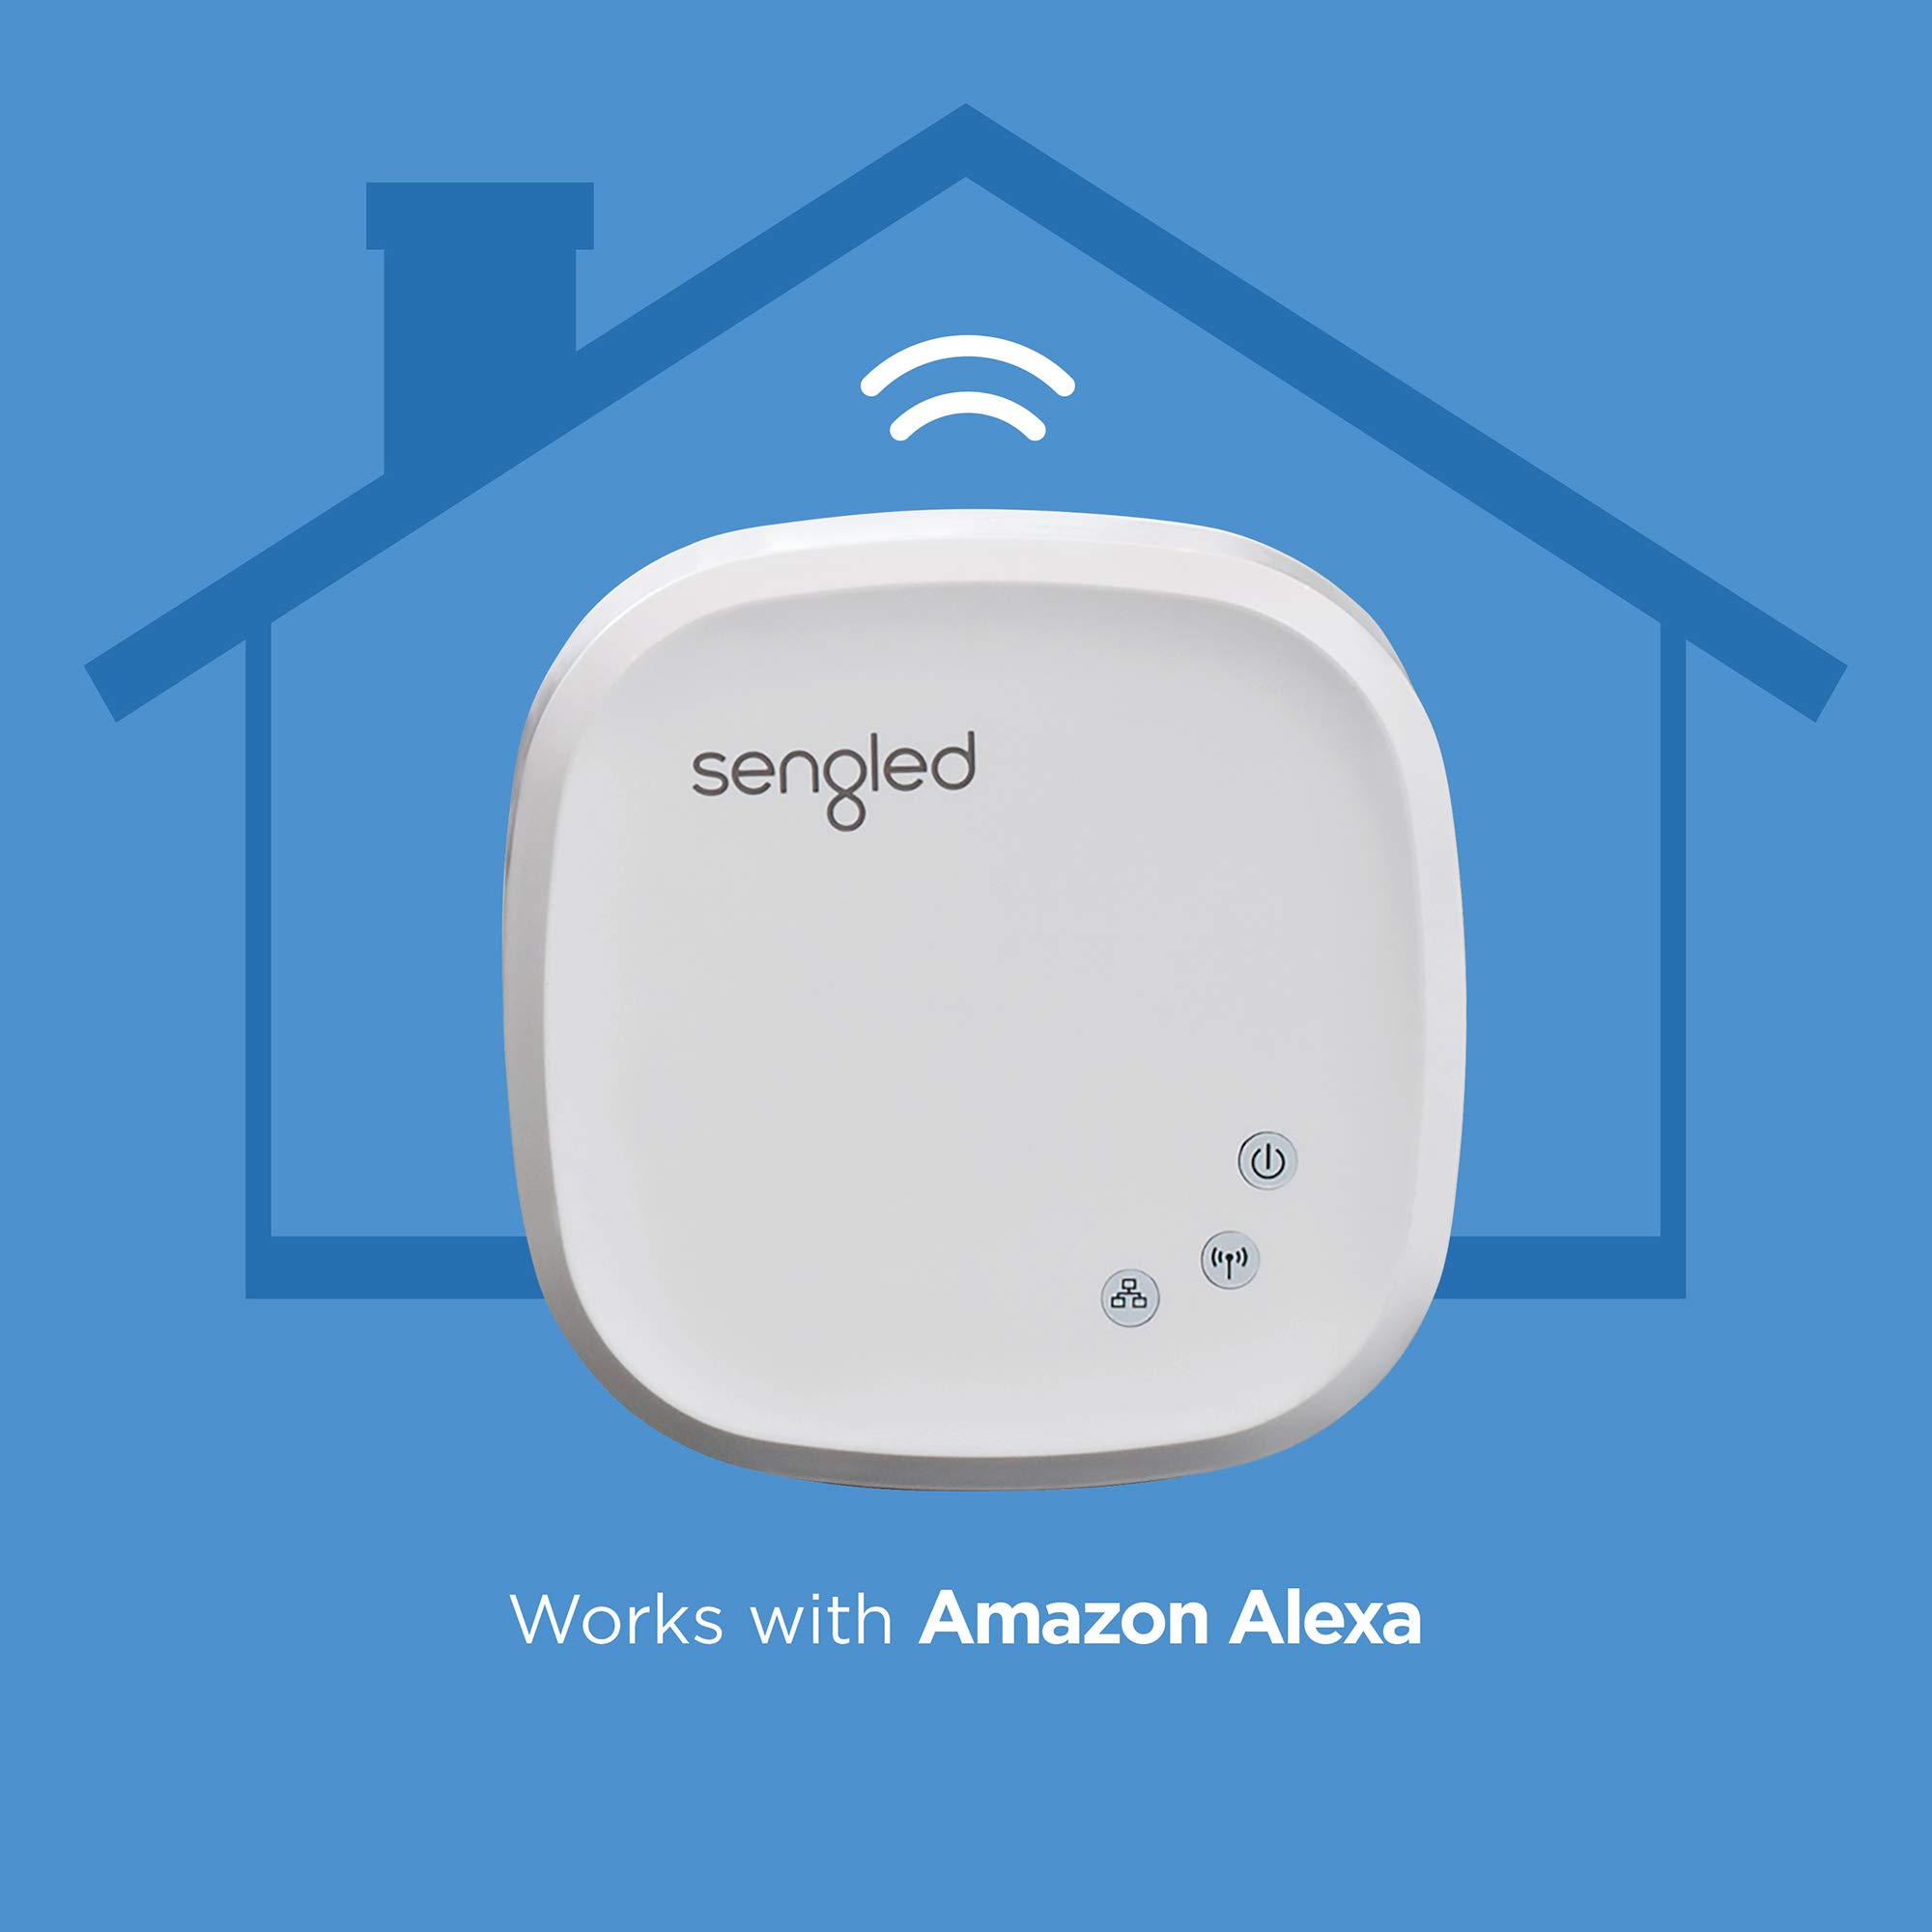 Sengled Smart Hub, For Use with Sengled Smart Products, Compatible with Alexa and Google Assistant by Sengled (Image #2)